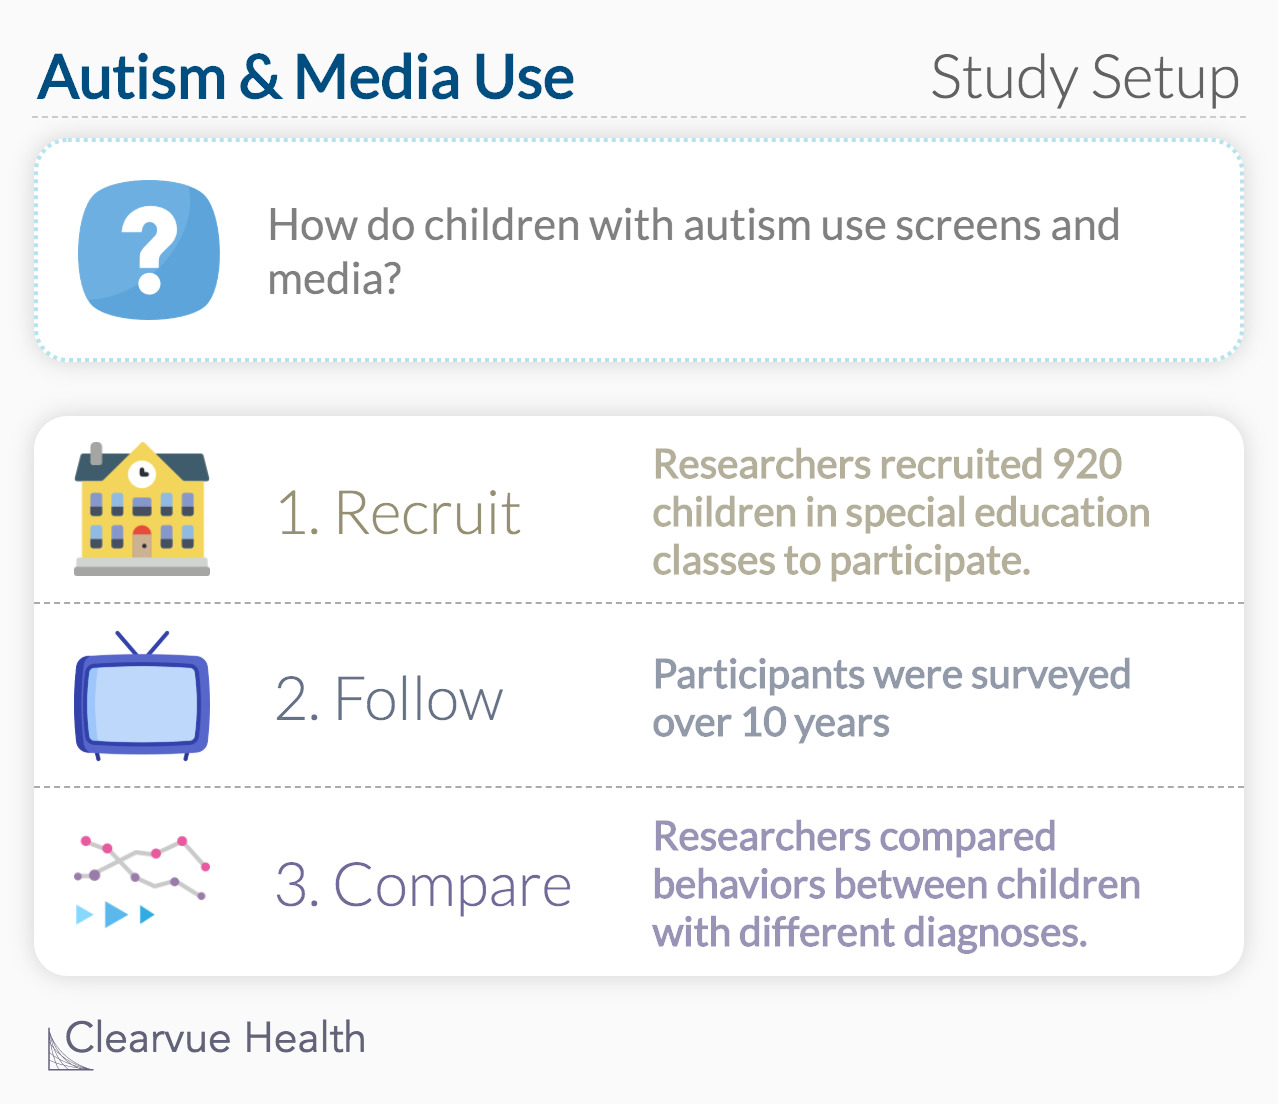 Autism & Media Use Study Setup